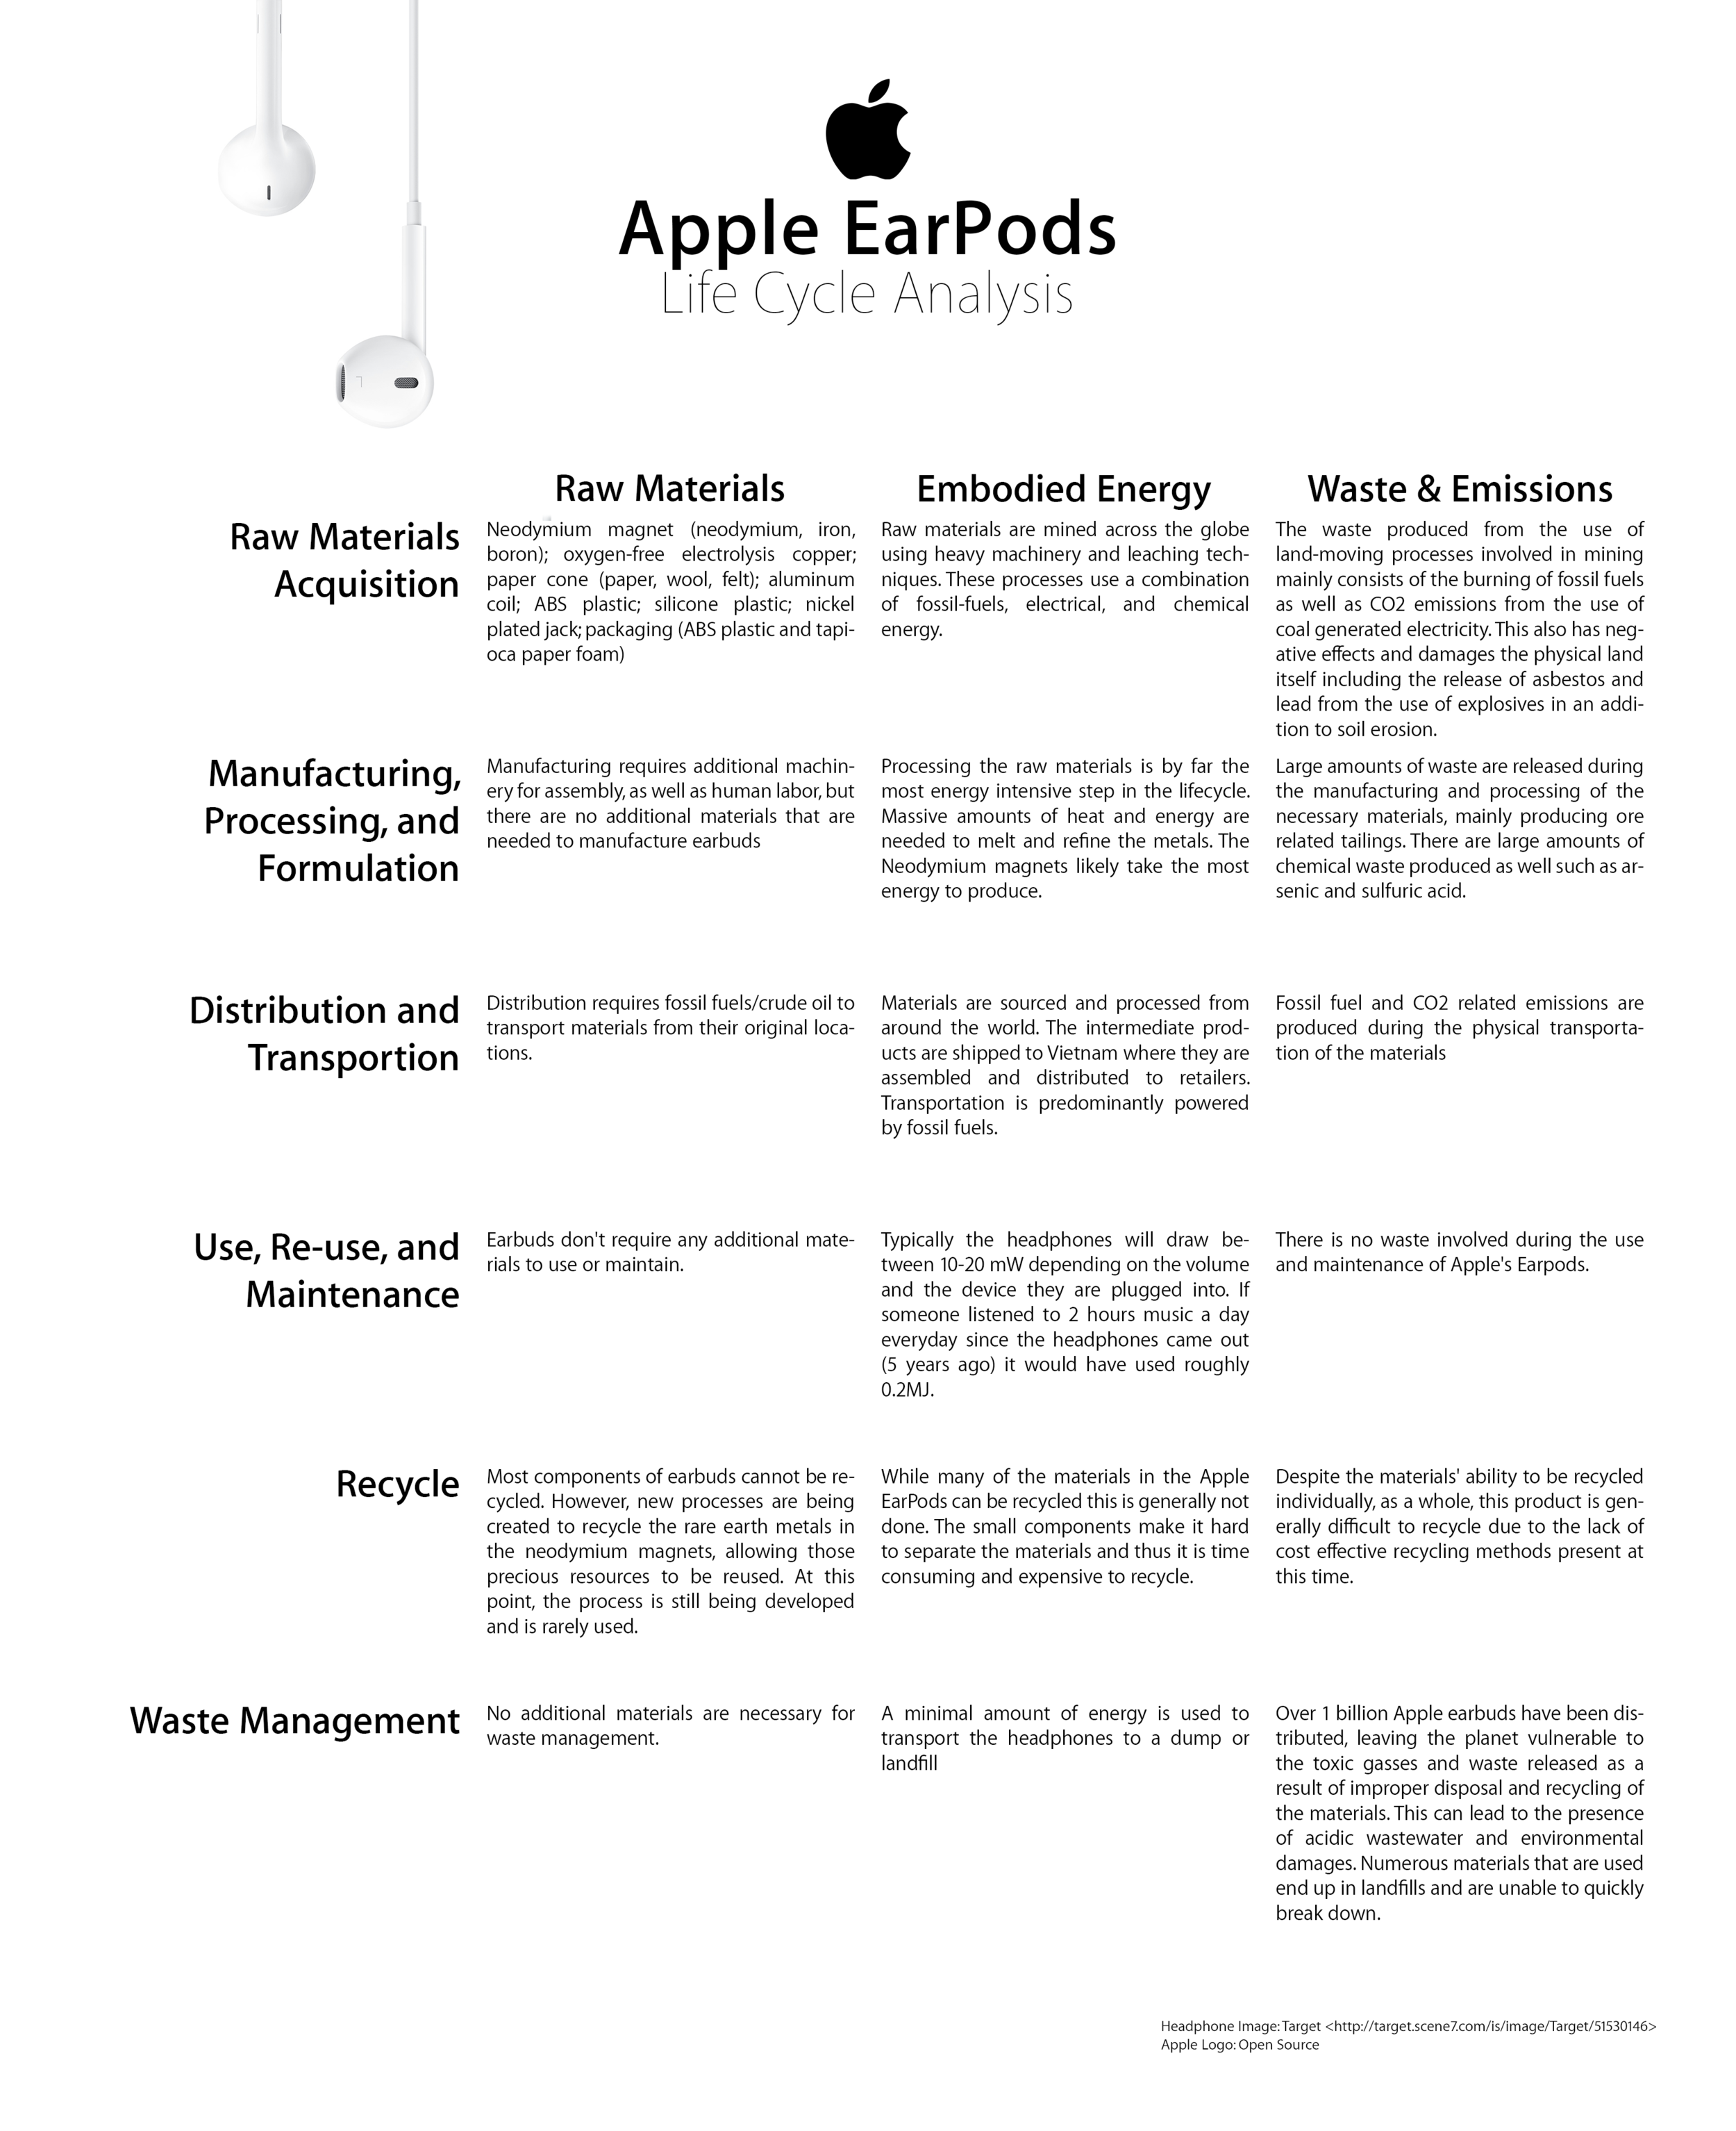 Apple Earbuds Life Cycle Poster.png